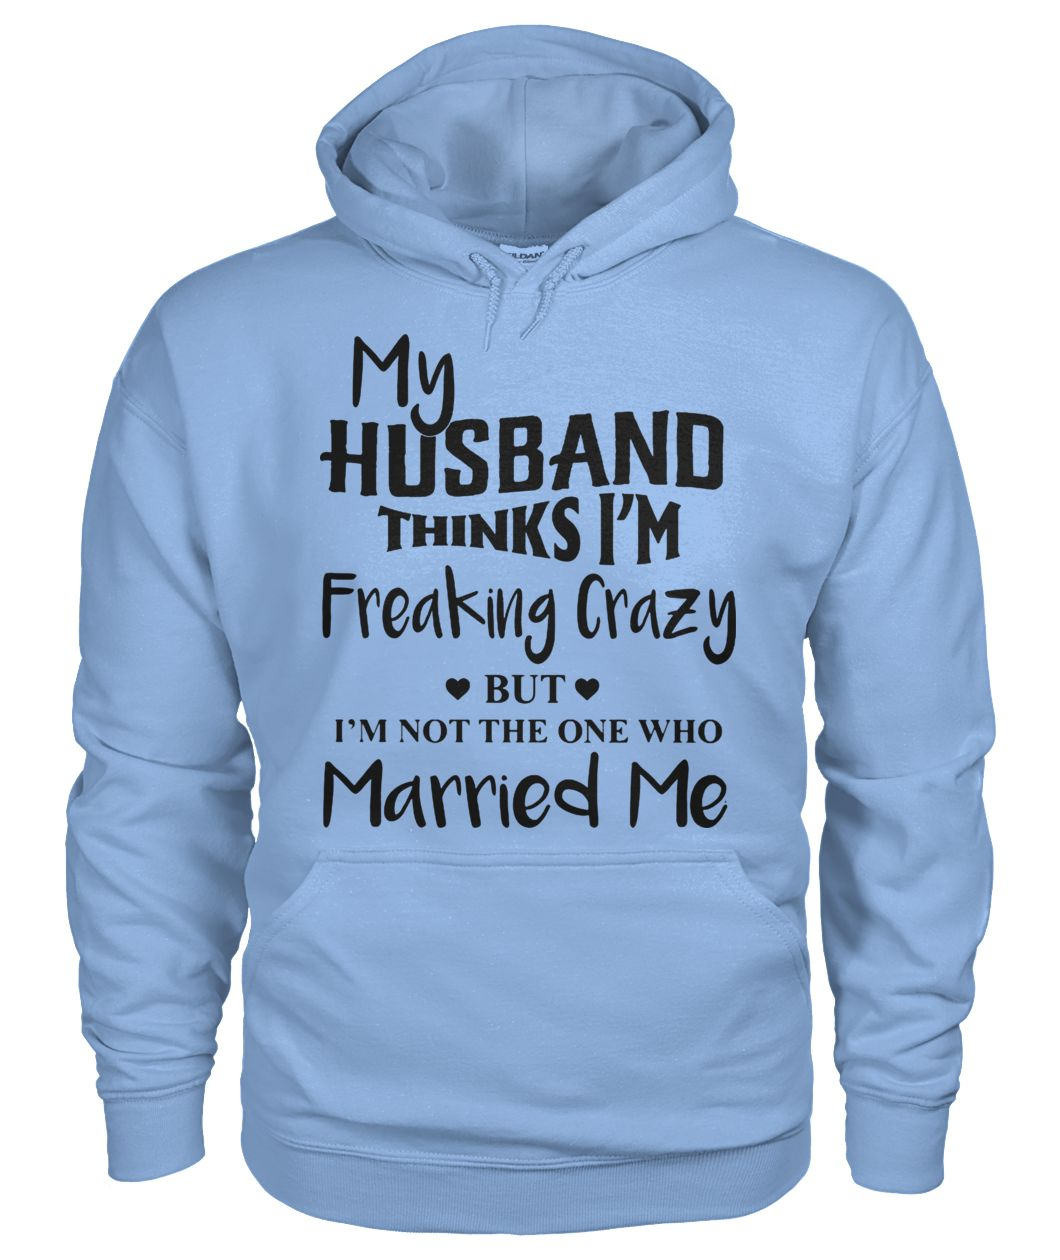 My husband thinks I'm freaking crazy but I'm not the one who married me gildan hoodie